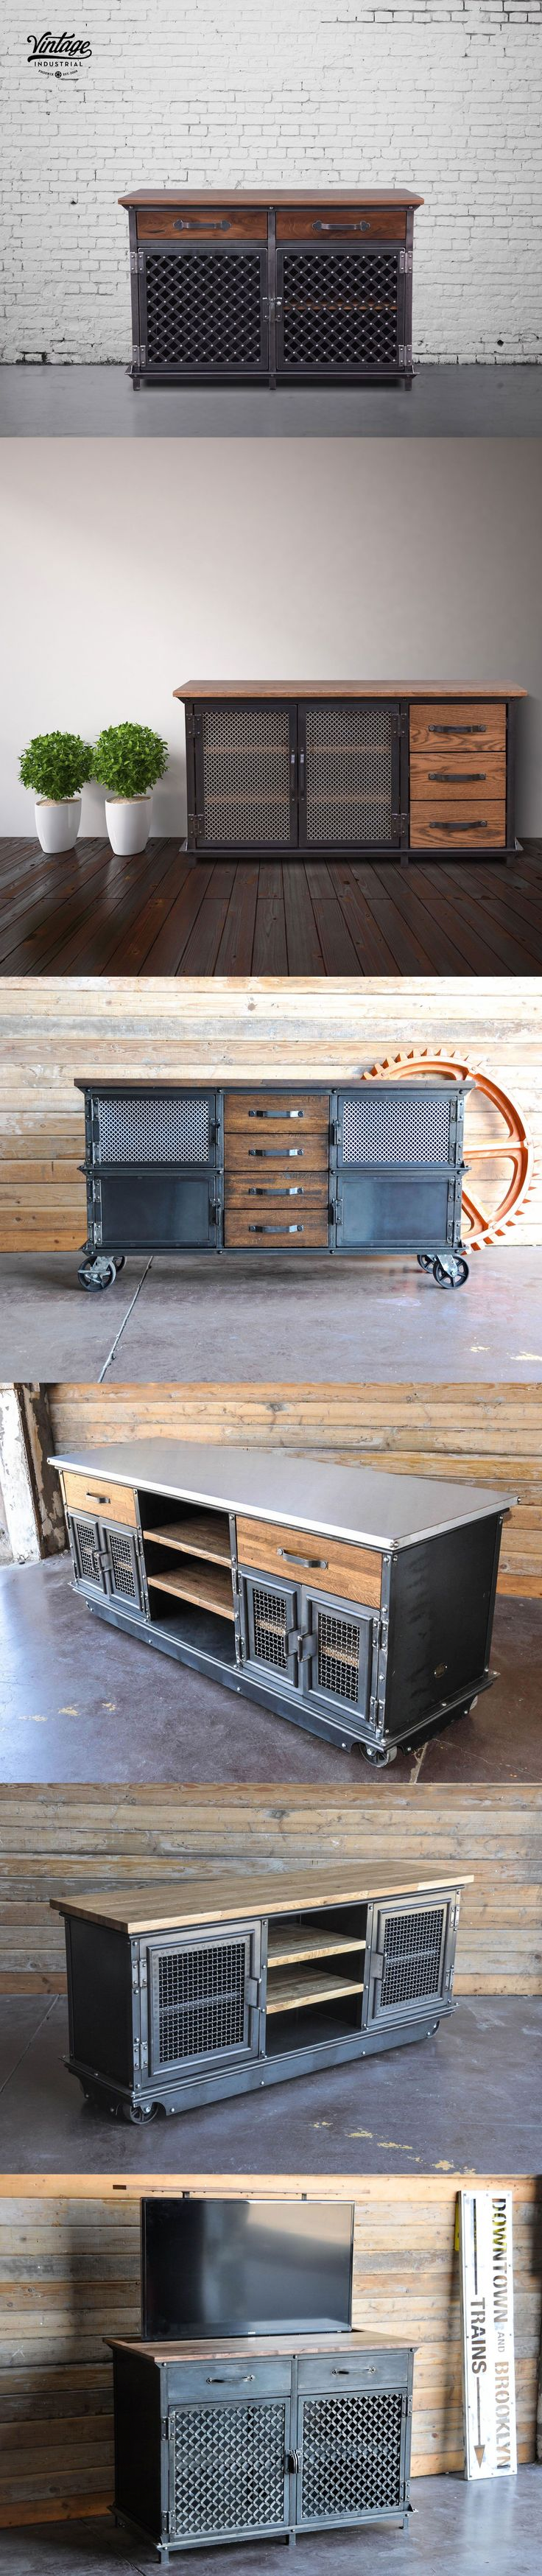 Best 25+ Steel furniture ideas on Pinterest | Wood steel, Steel ...